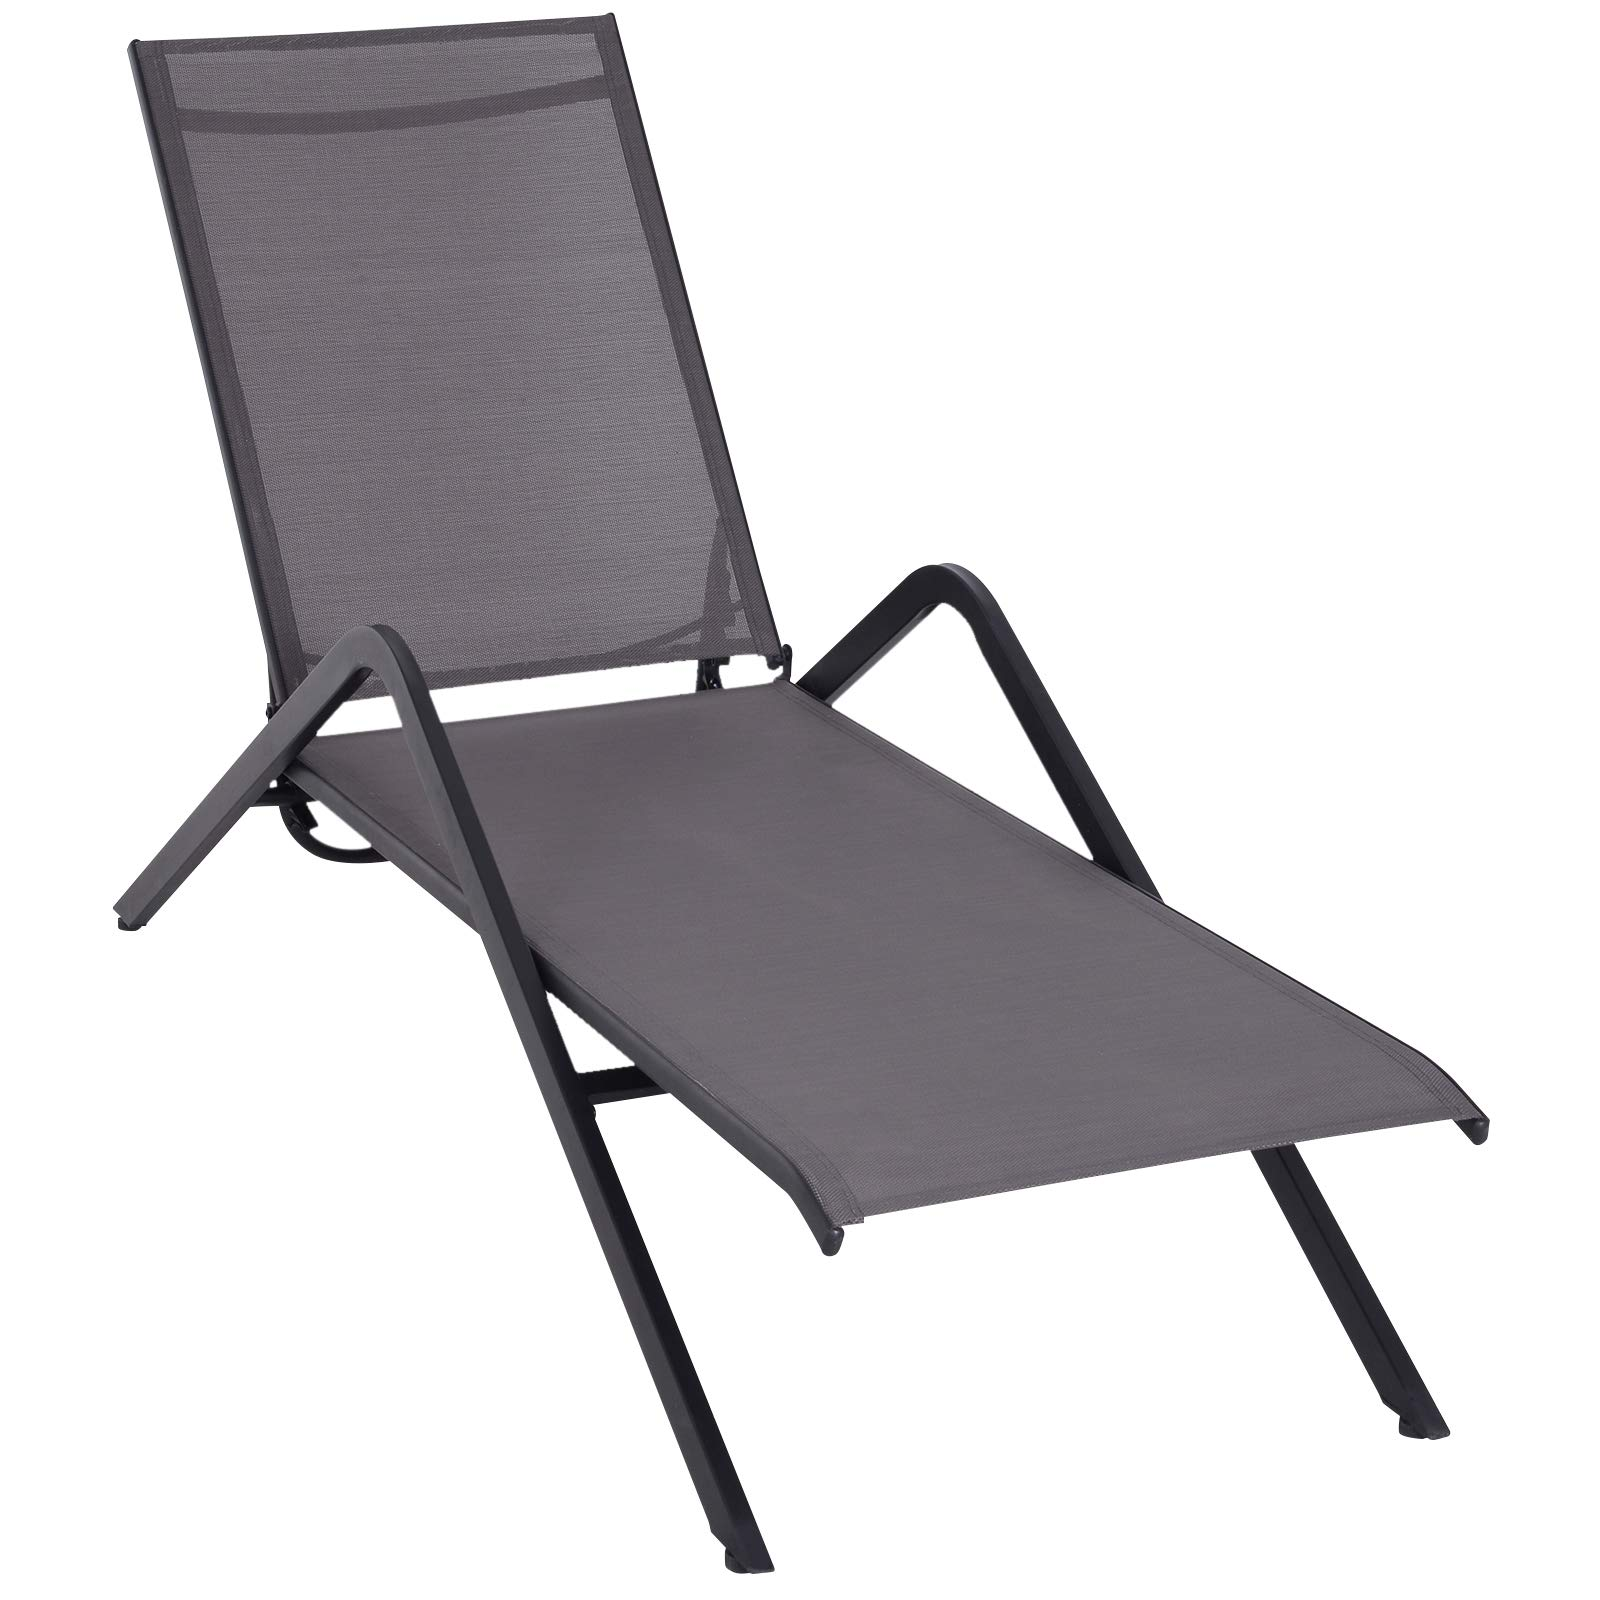 Outsunny Steel Mesh Adjustable Portable Folding Outdoor Chaise Lounge Chair - Grey by Outsunny